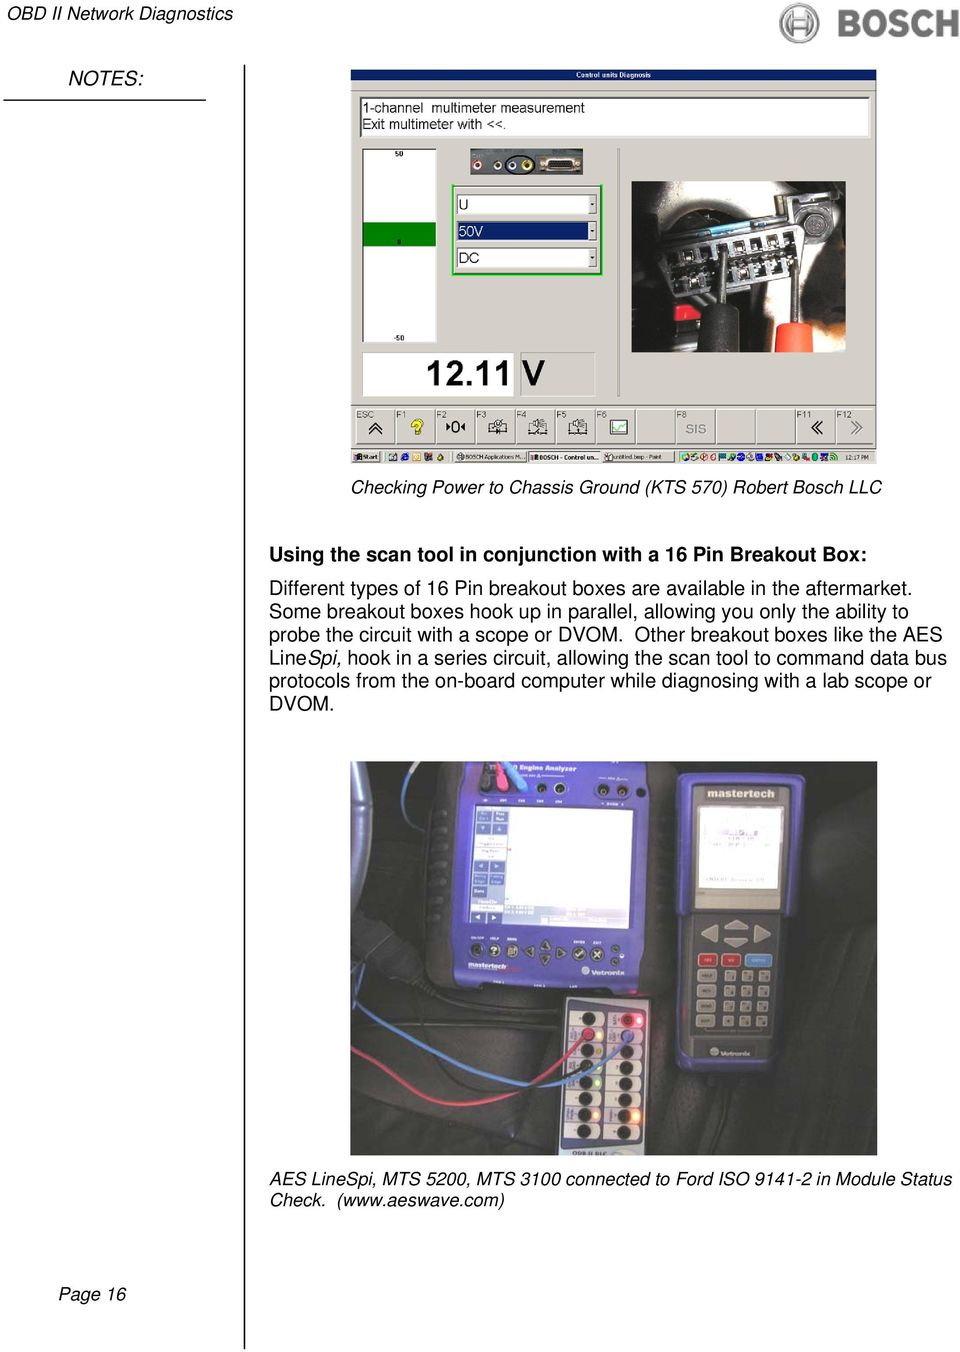 Lexus Navigation Center Pdf Ssr Obd Ii Wiring Diagram Some Breakout Boxes Hook Up In Parallel Allowing You Only The Ability To Probe